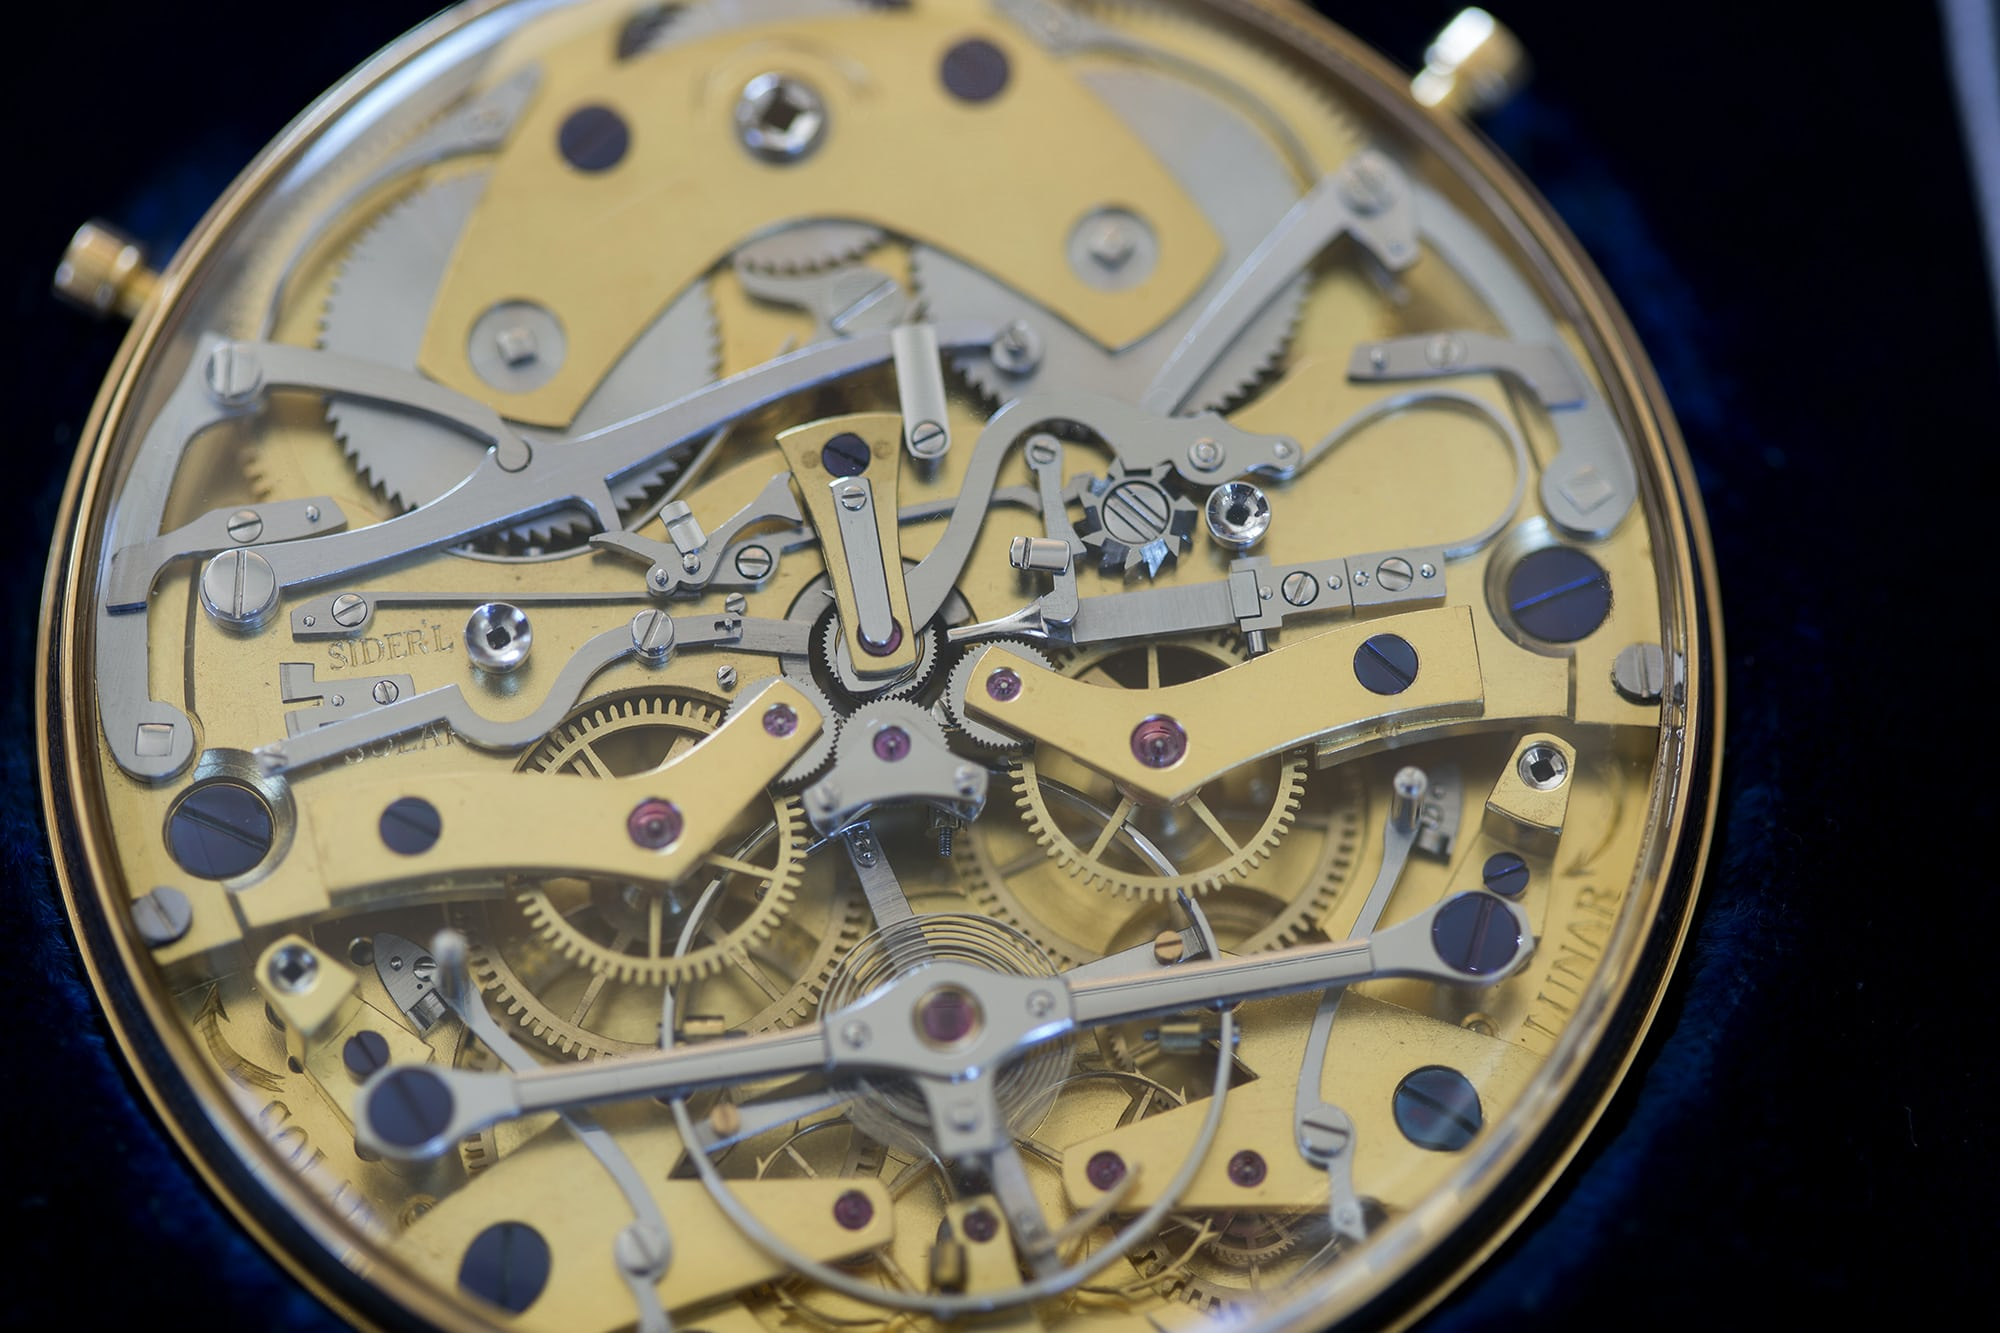 Daniels Space Traveler movement closeup Auction Report: Sotheby's To Offer The Daniels 'Space Traveller' Watch, September 19th In London Auction Report: Sotheby's To Offer The Daniels 'Space Traveller' Watch, September 19th In London 20010469 copy